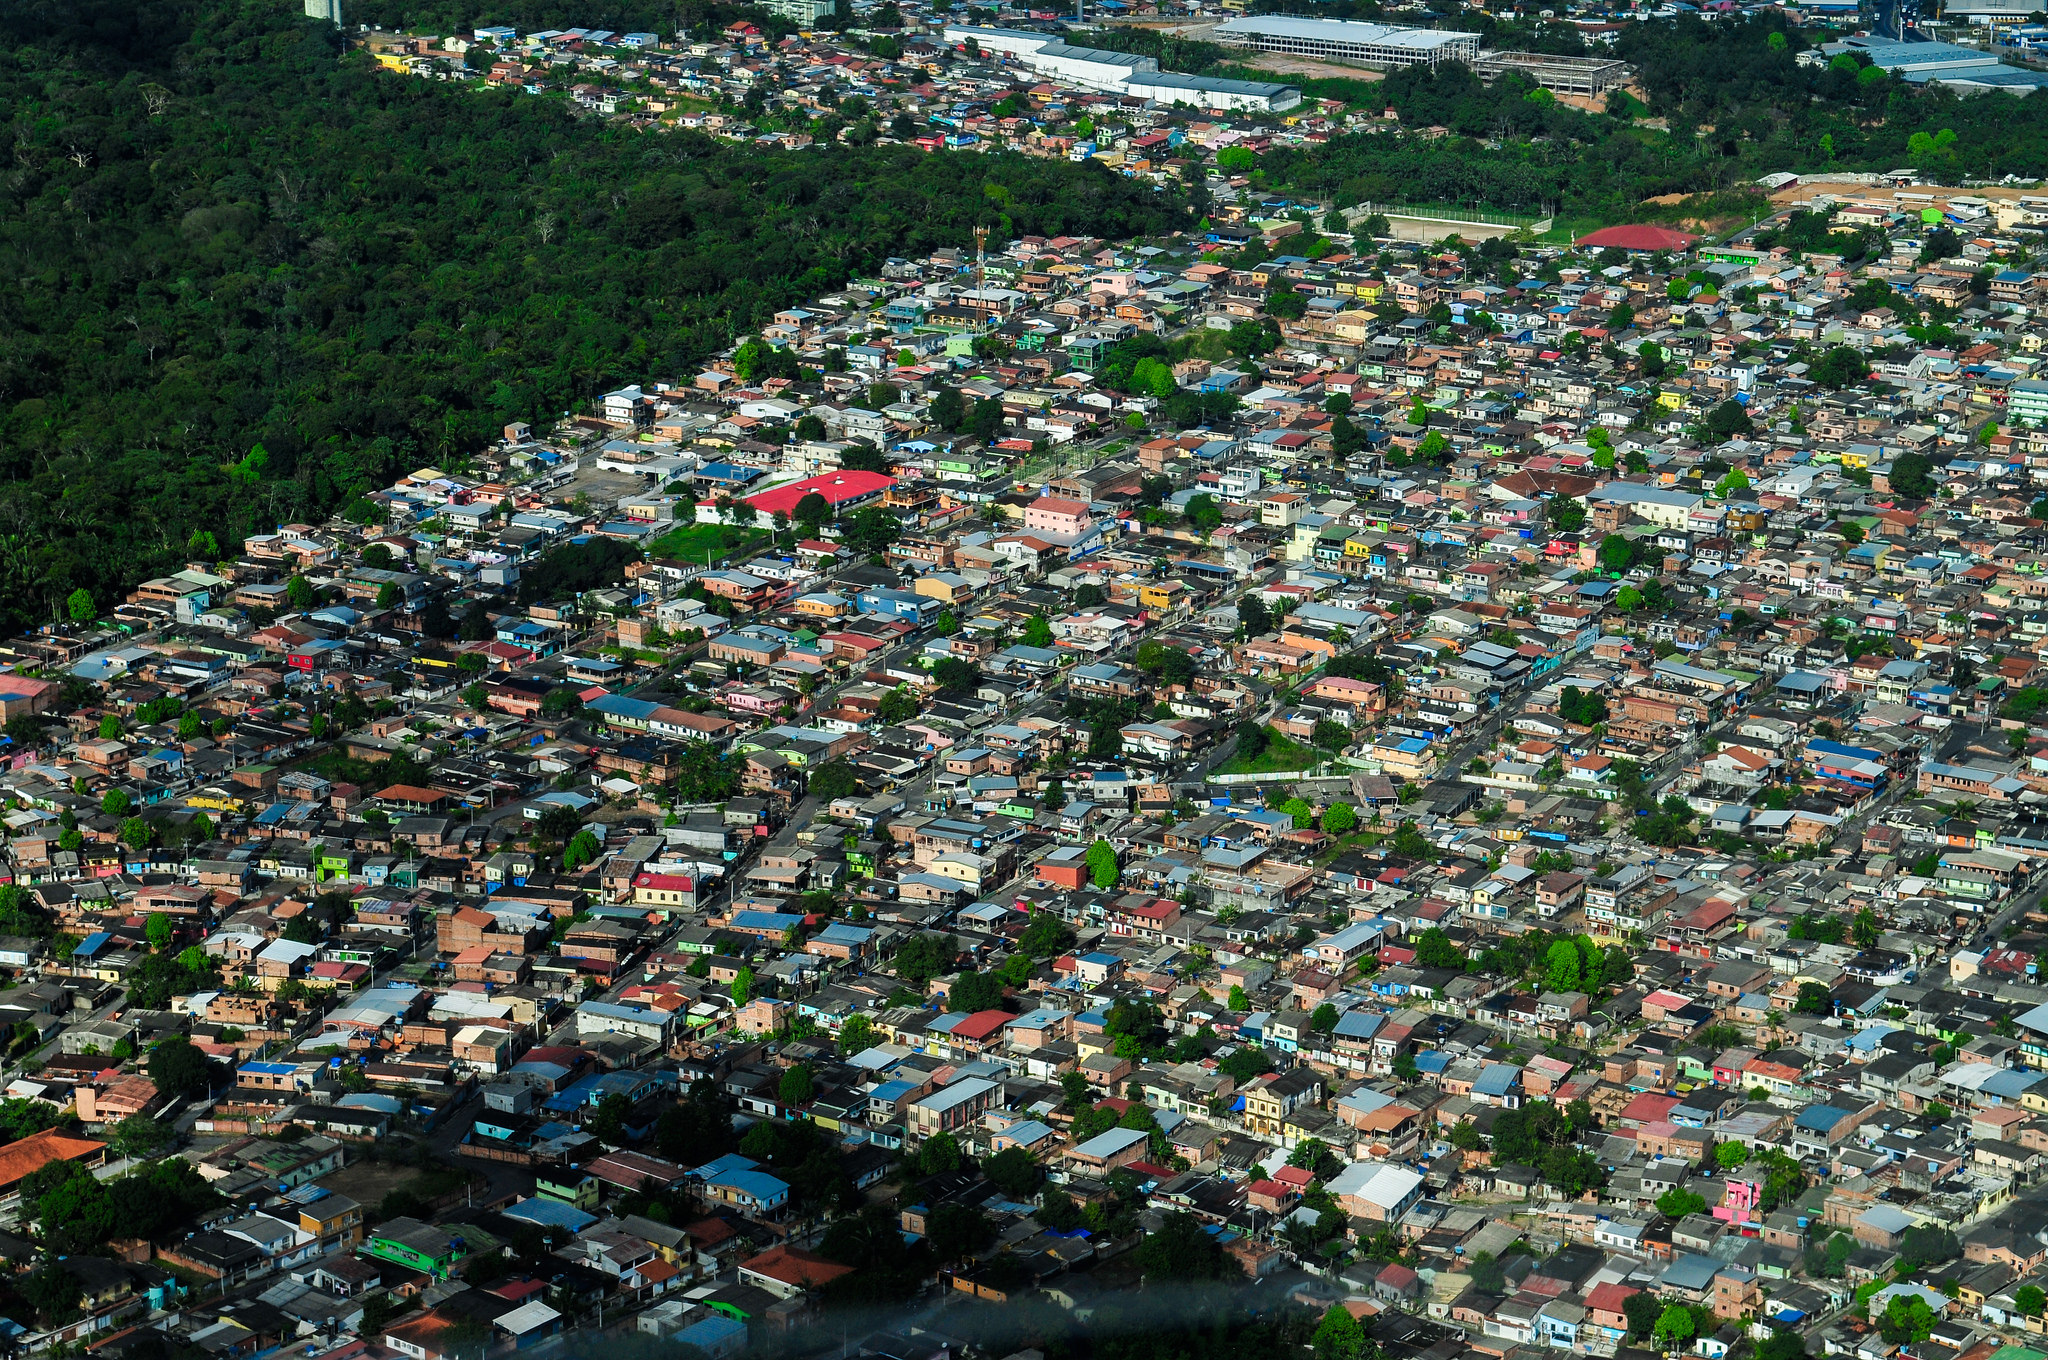 Aerial view of Manaus, the capital of the Brazilian state of Amazonas, Brazil. Image shows dense development coming right up to the edge of the forest.